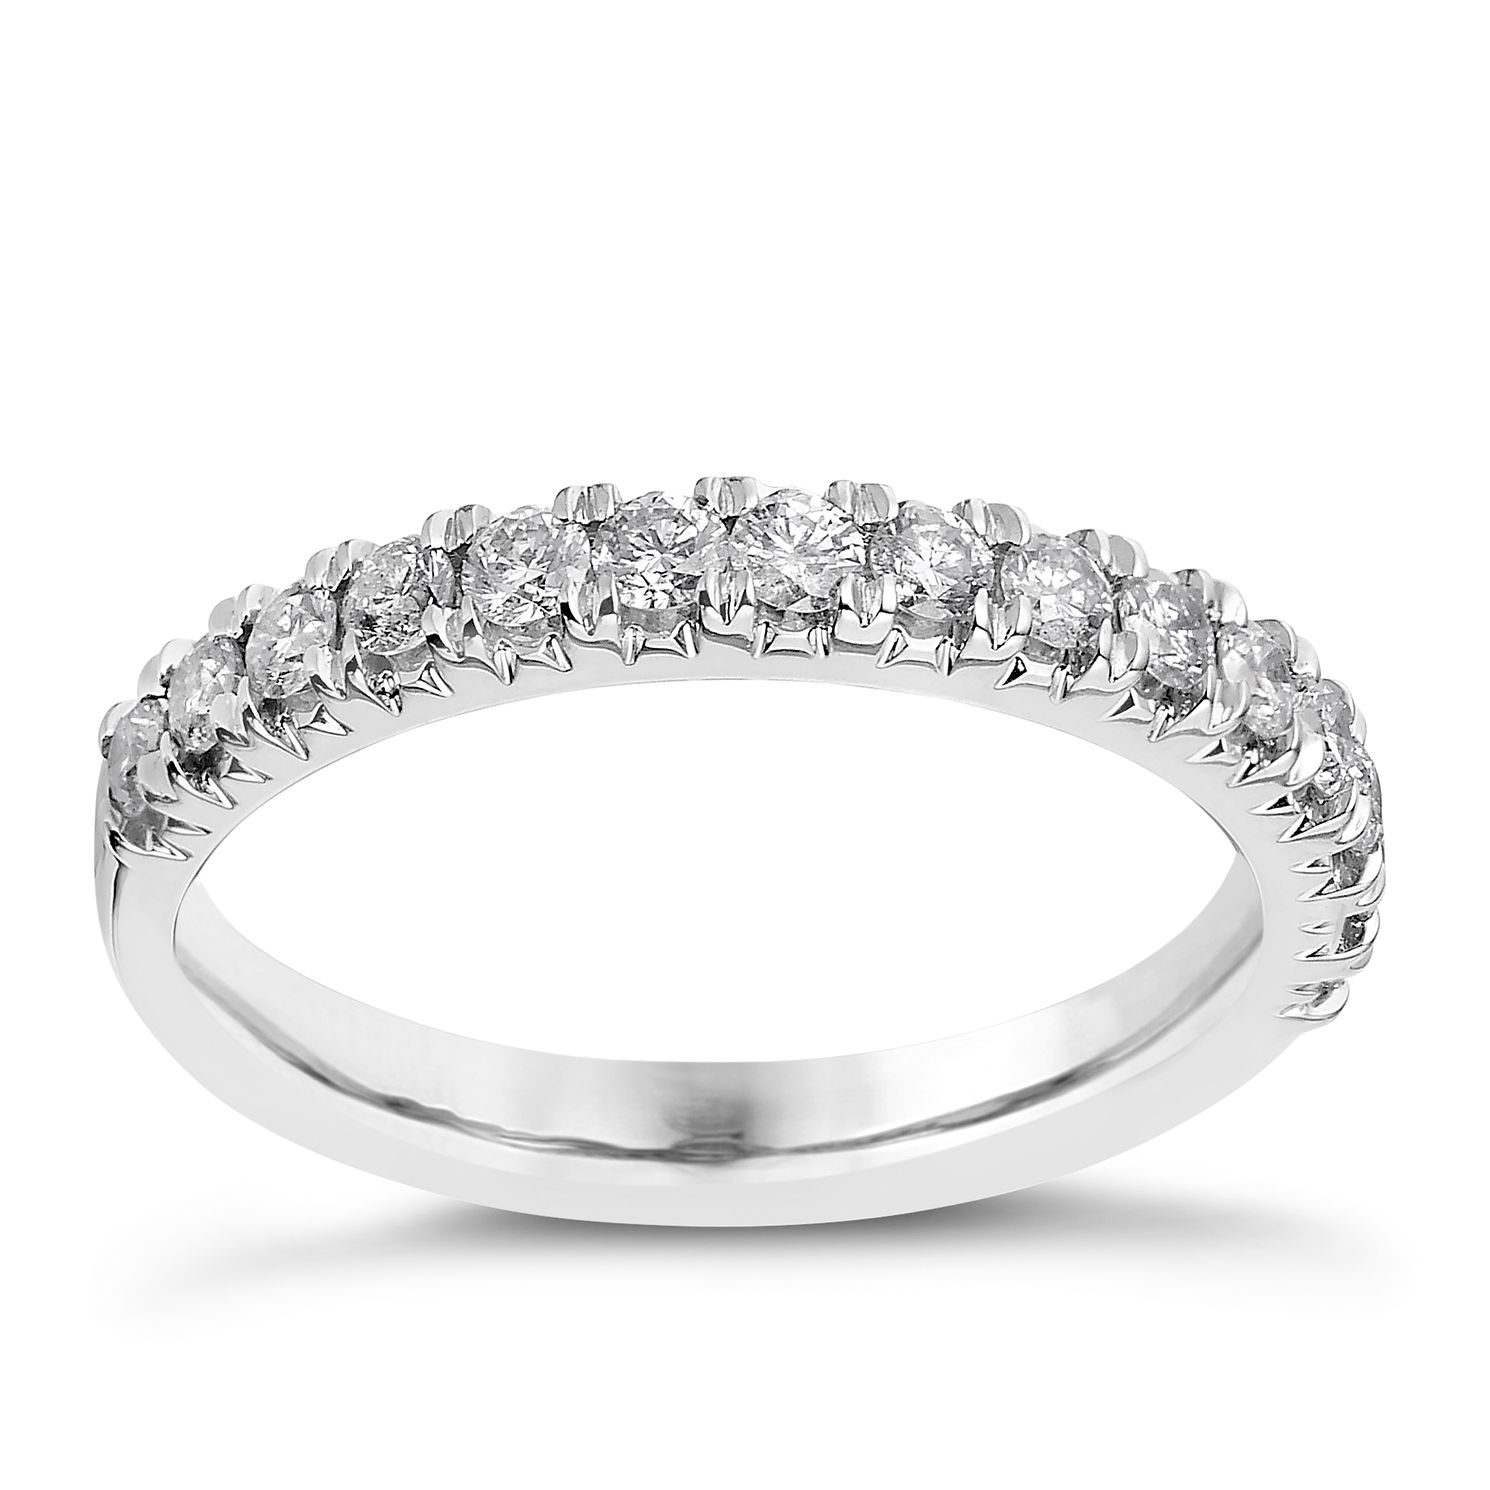 18ct White Gold 1/2ct Diamond Eternity Ring - Product number 2236192